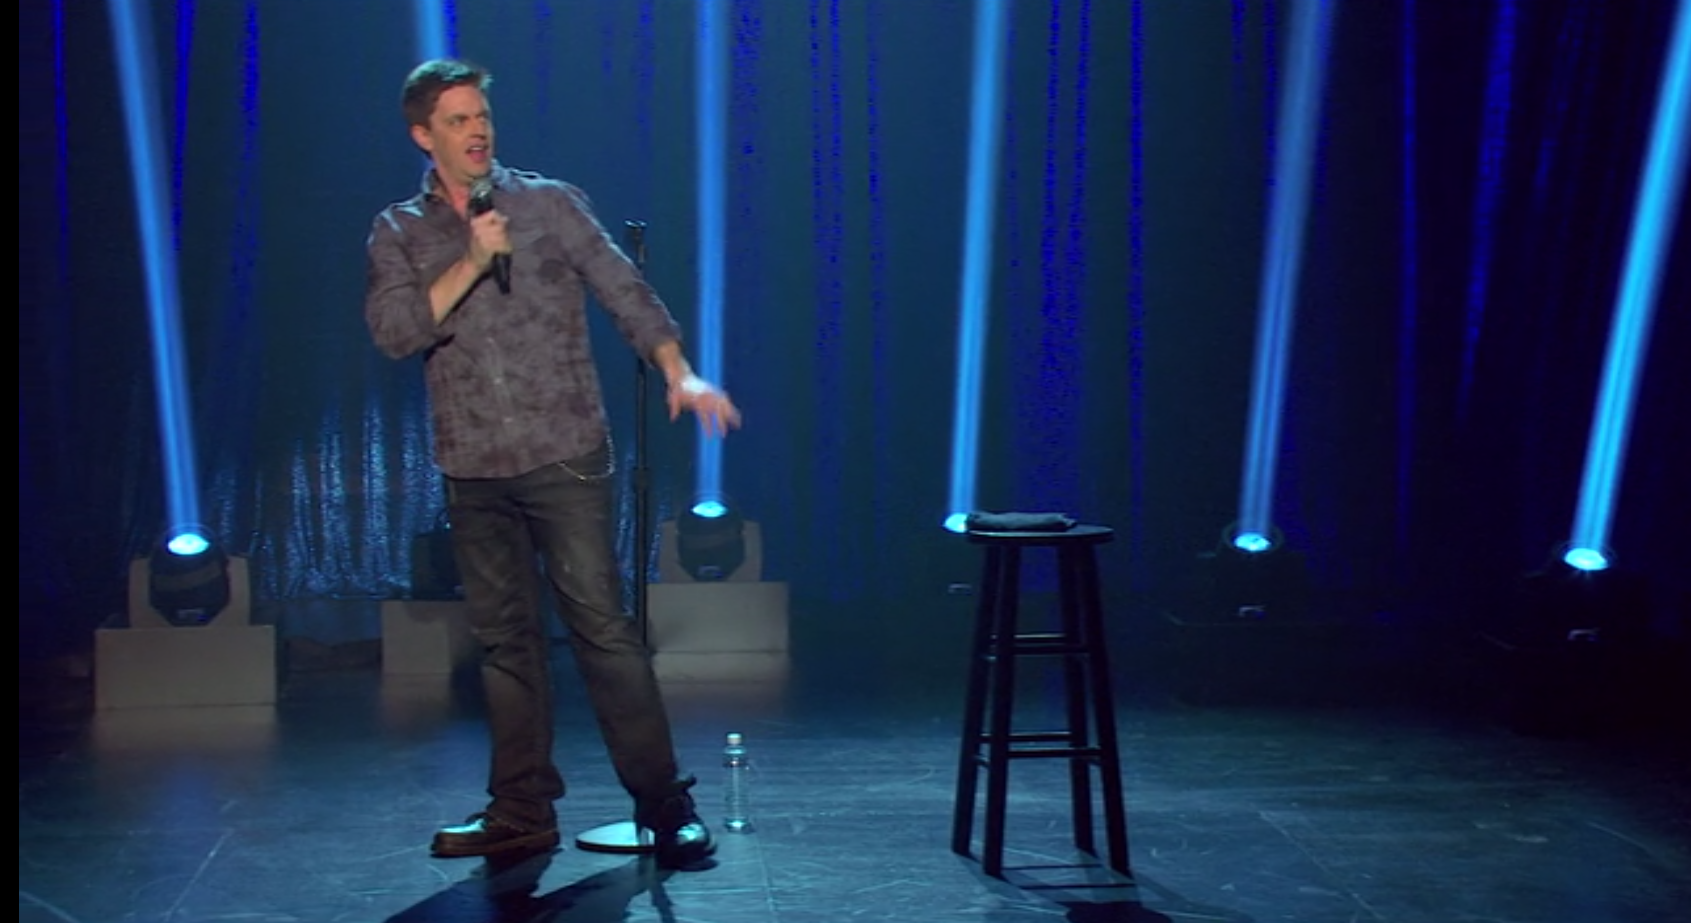 Jim Breuer - My Life of Dad - Life of Dad - A Worldwide ...